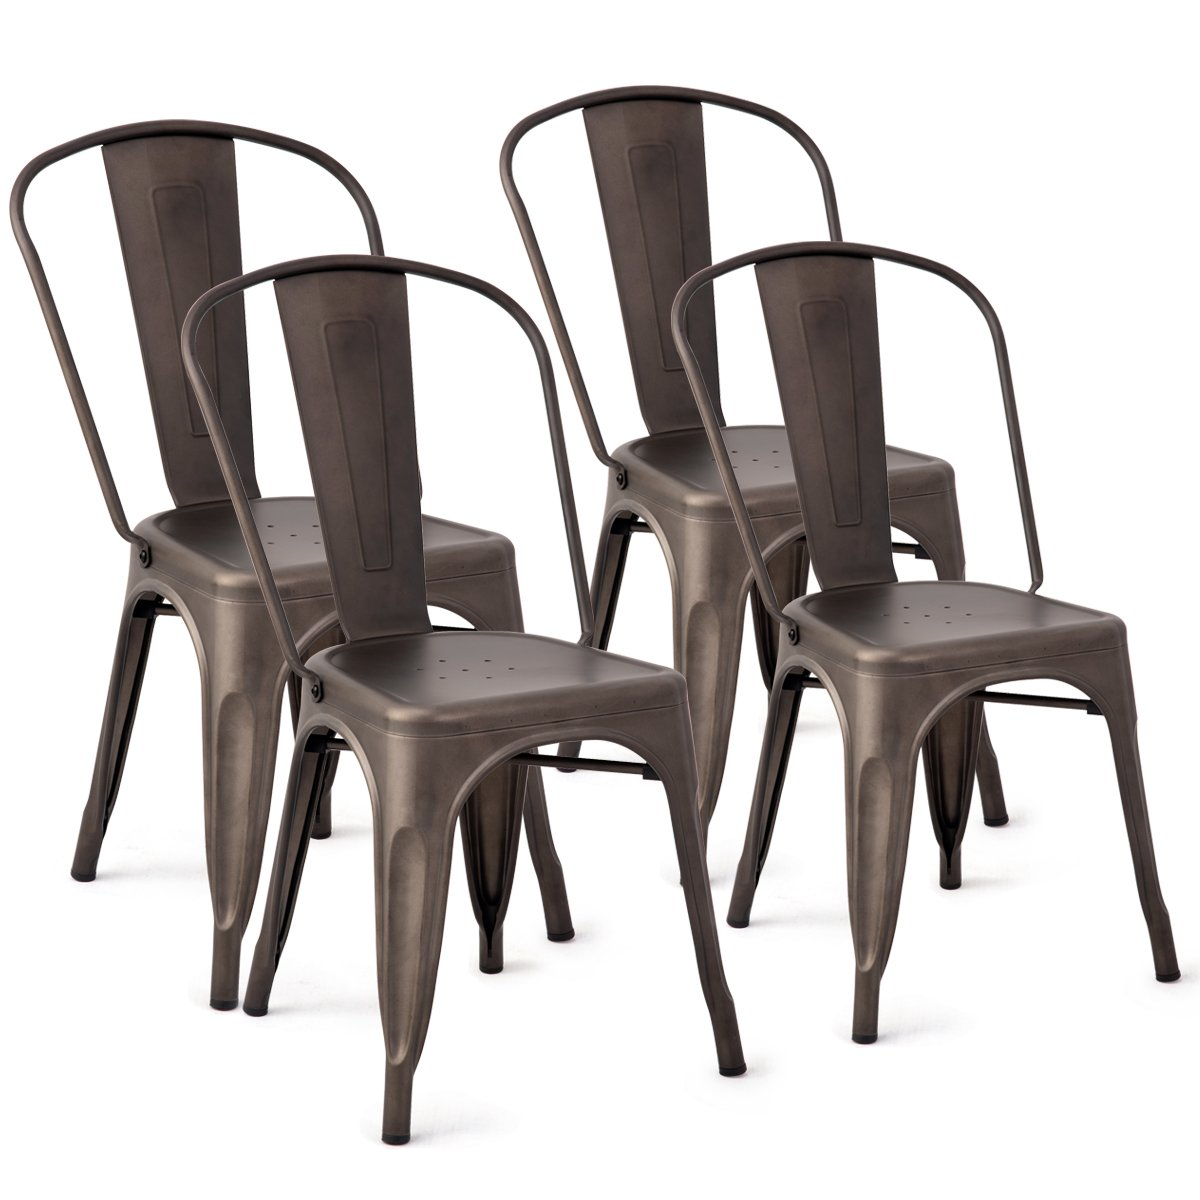 Costway Tolix Style Dining Chairs Metal Industrial Vintage Chic High Back Indoor Outdoor Dining Bistro Café Kitchen Side Stackable Chair Set of 4 (Copper)